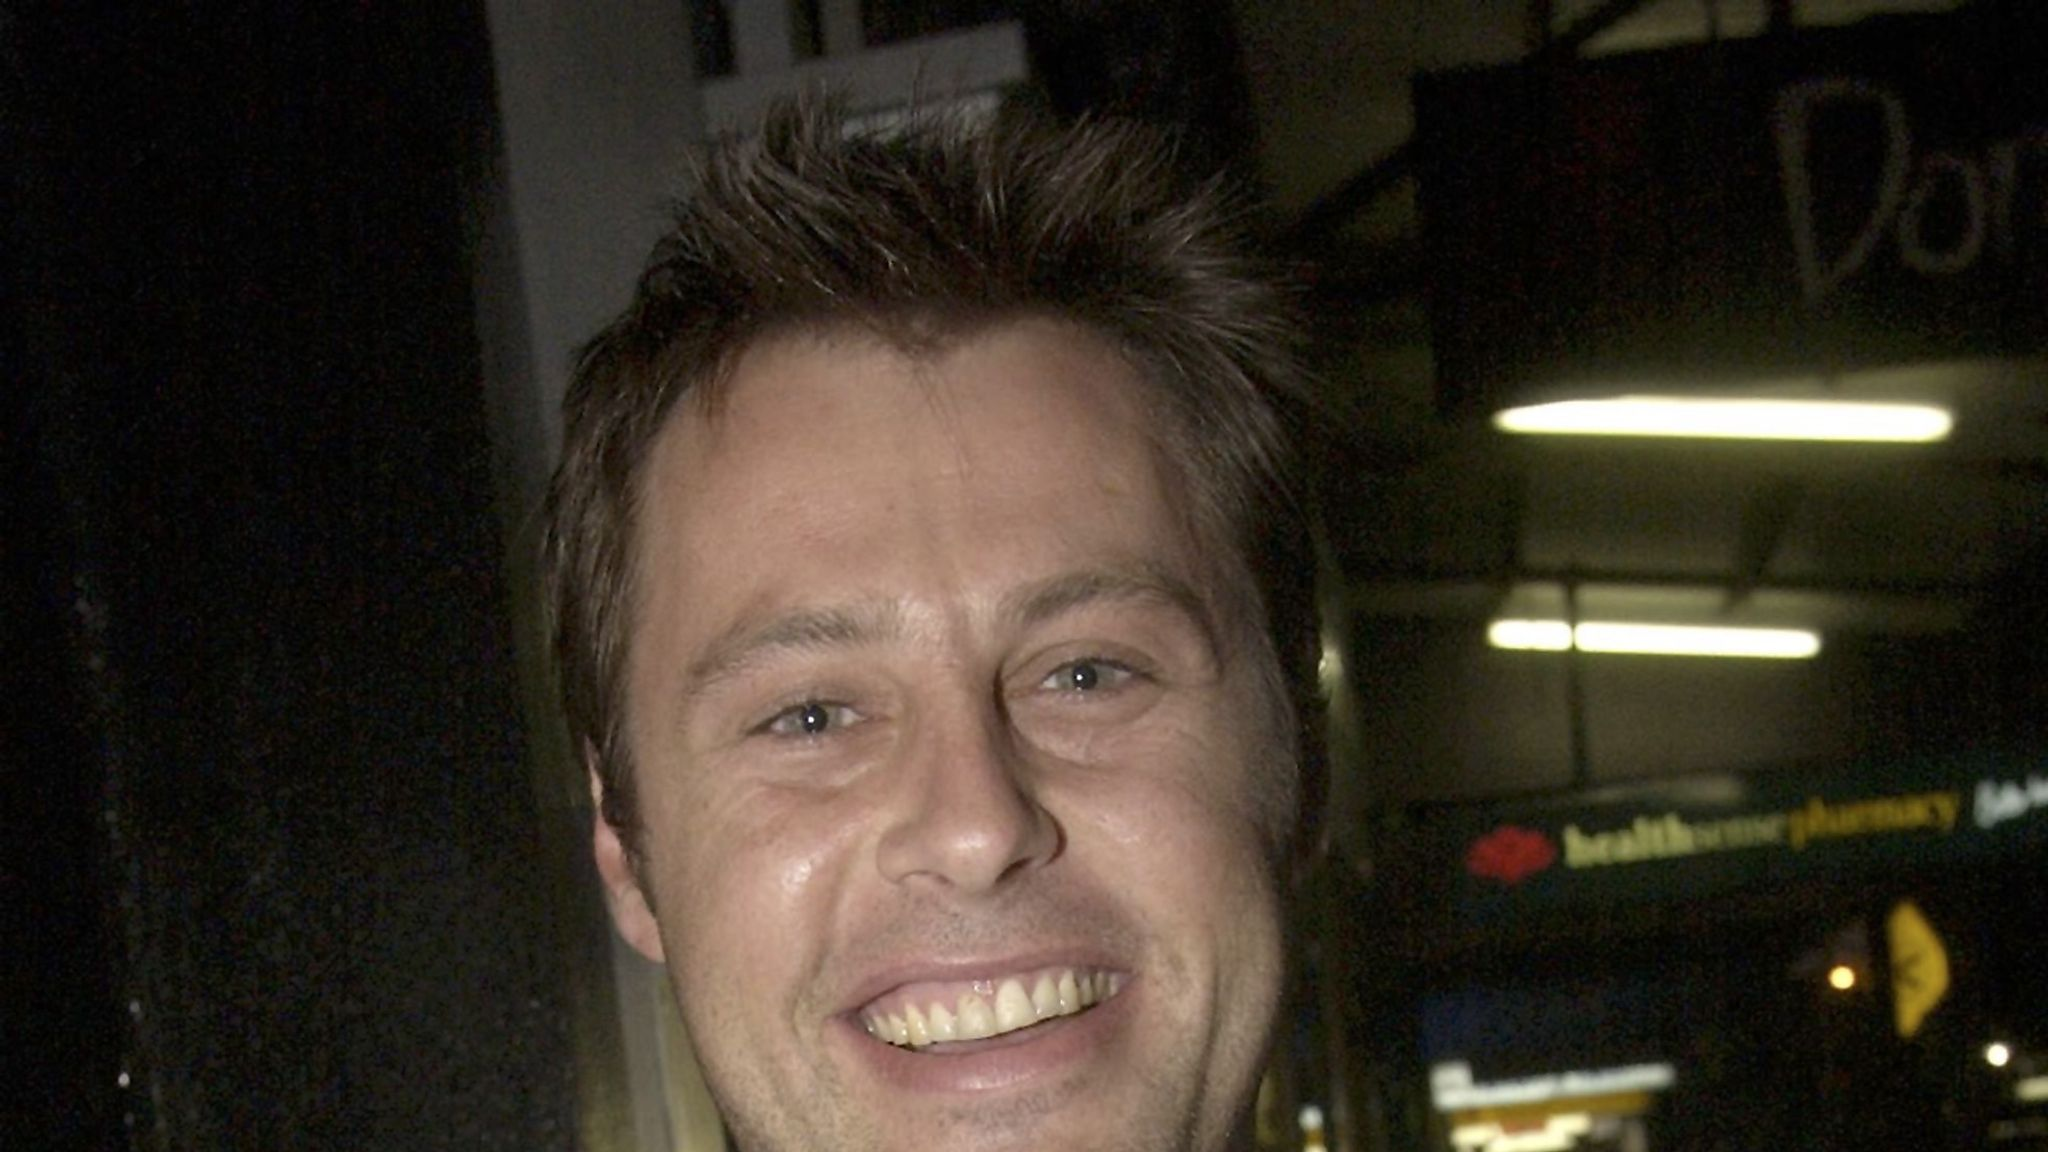 Ex-Home and Away star Joel McIlroy charged after 'repeatedly punching policewoman'